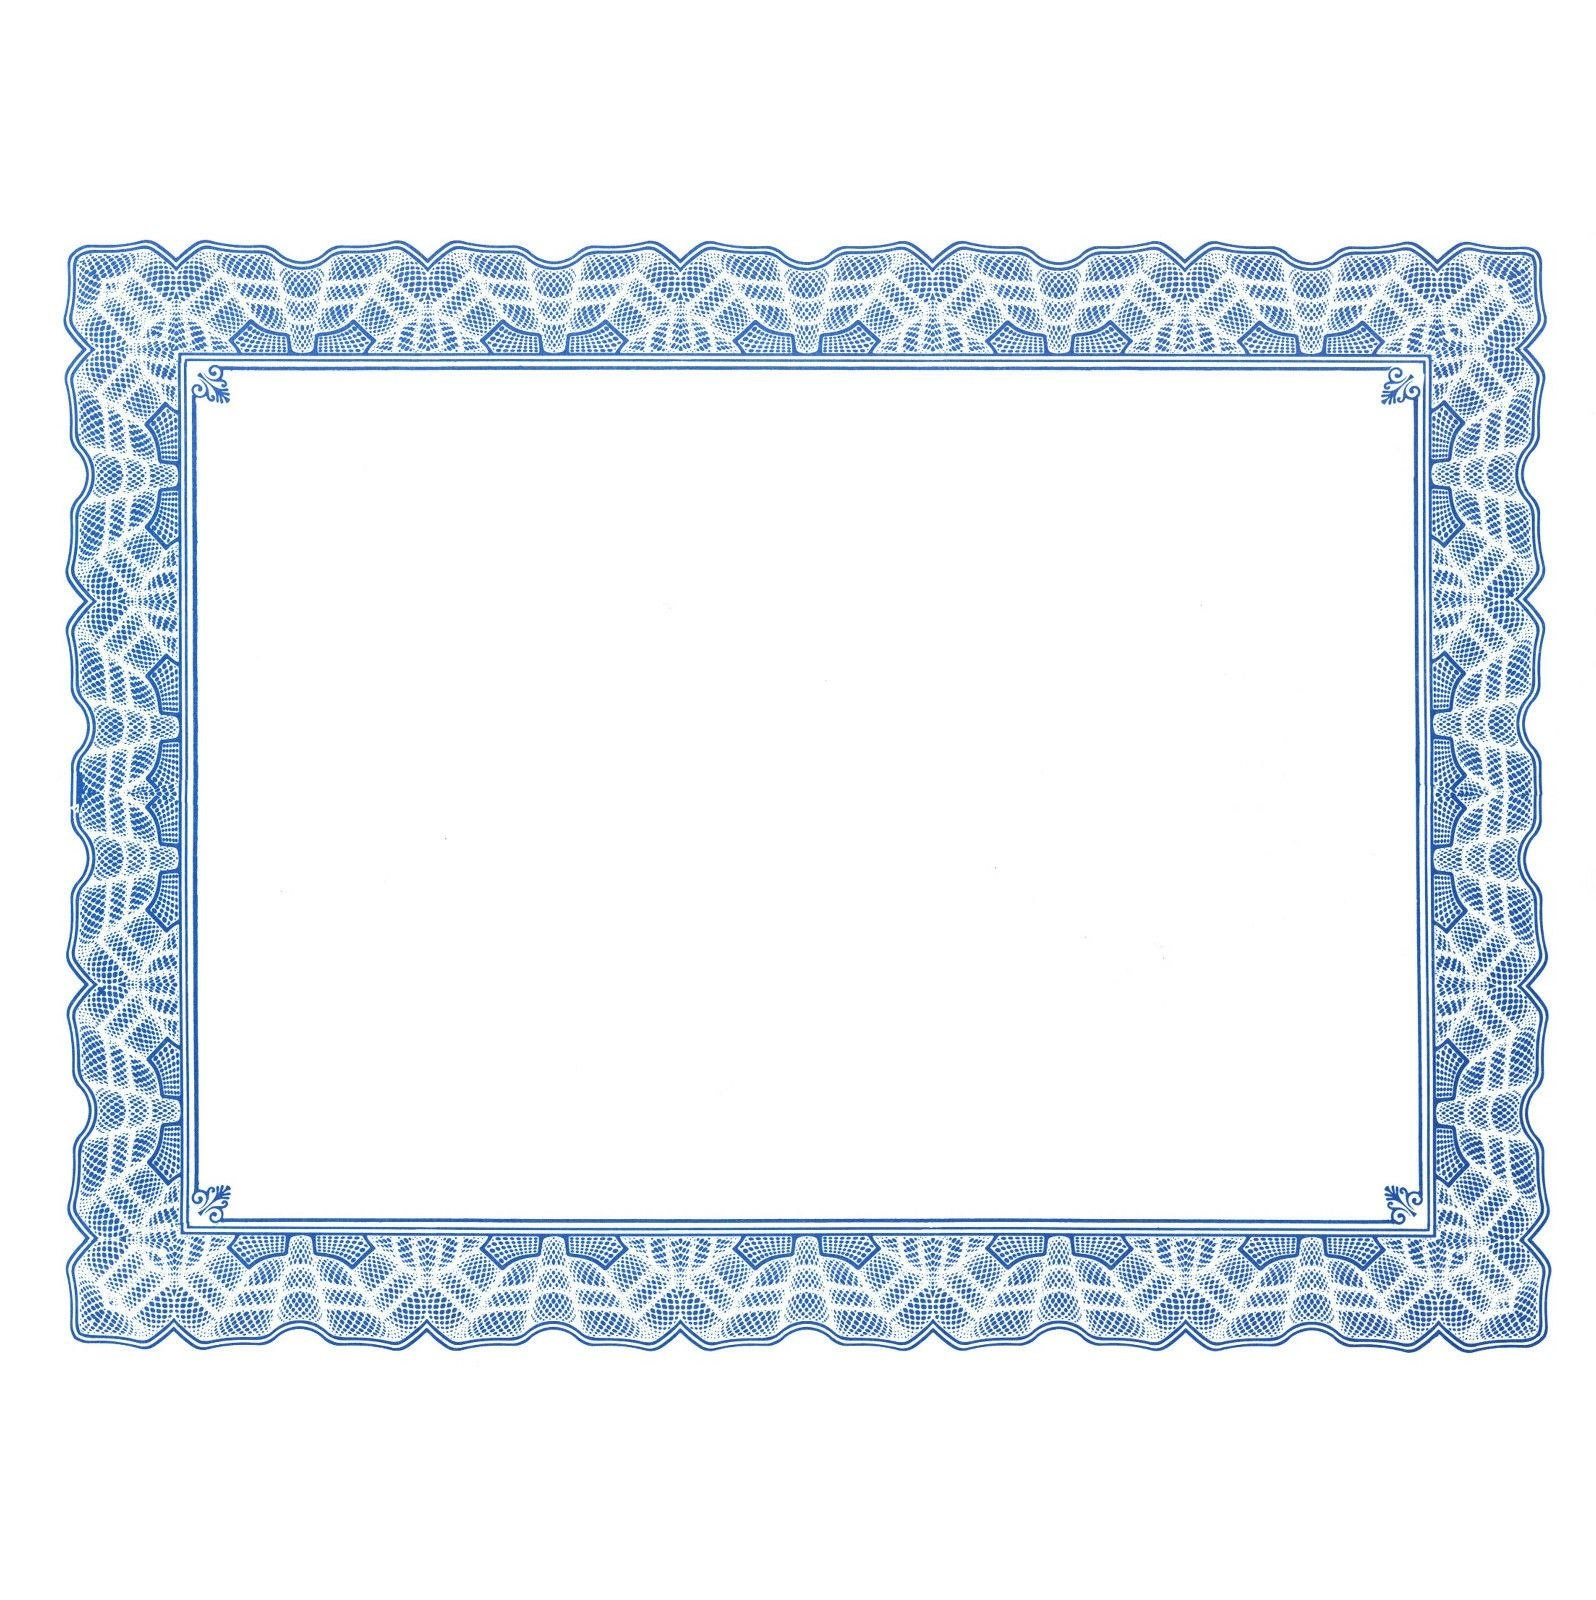 Free Certificate Border Templates For Word  Besttemplates  Best Intended For Free Printable Certificate Border Templates